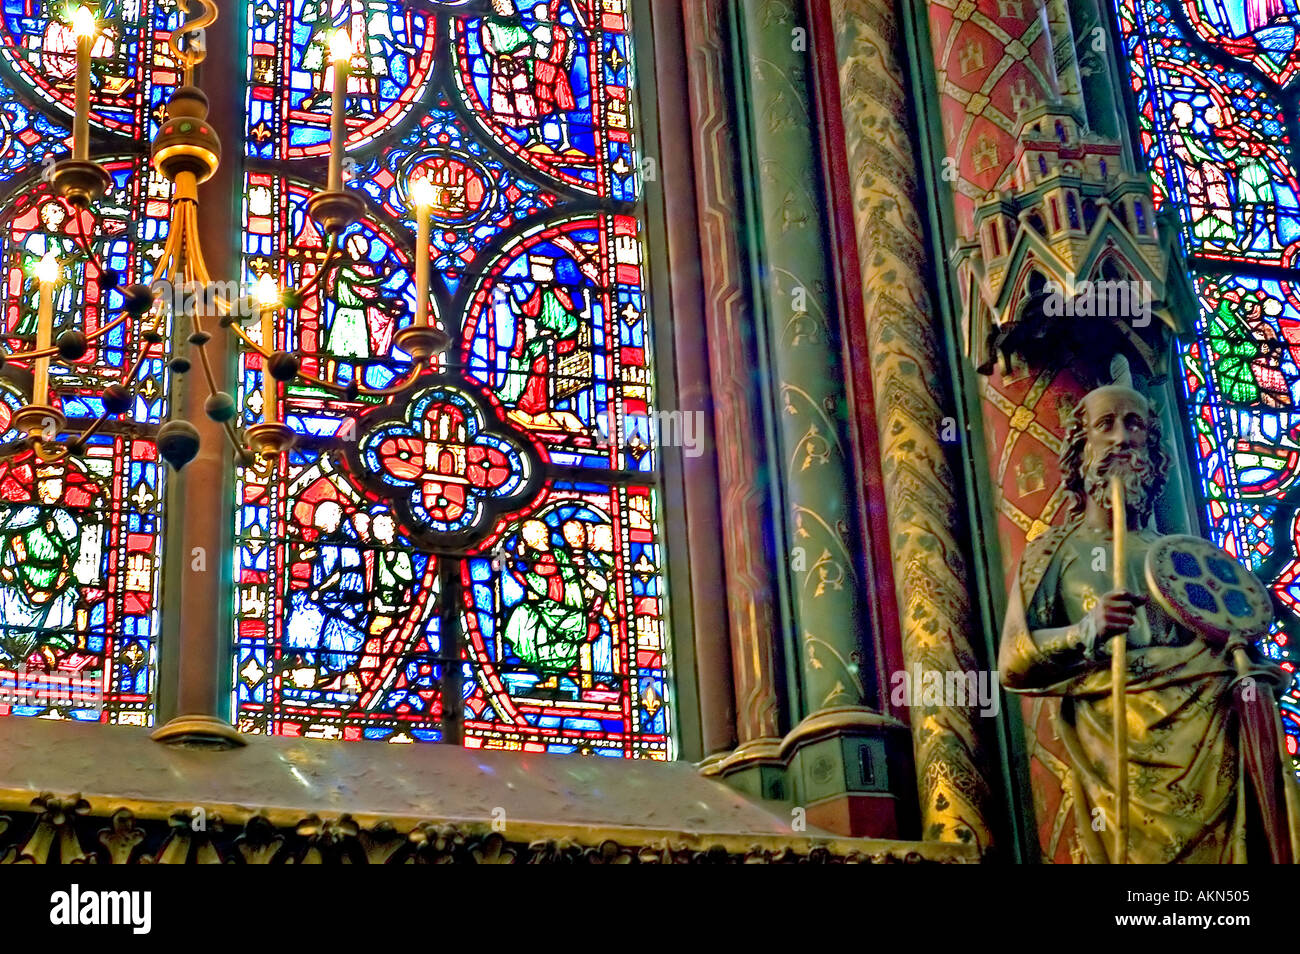 Paris France Monument Sainte Chapelle St High Gothic Architecture Stained Glass Windows Detail